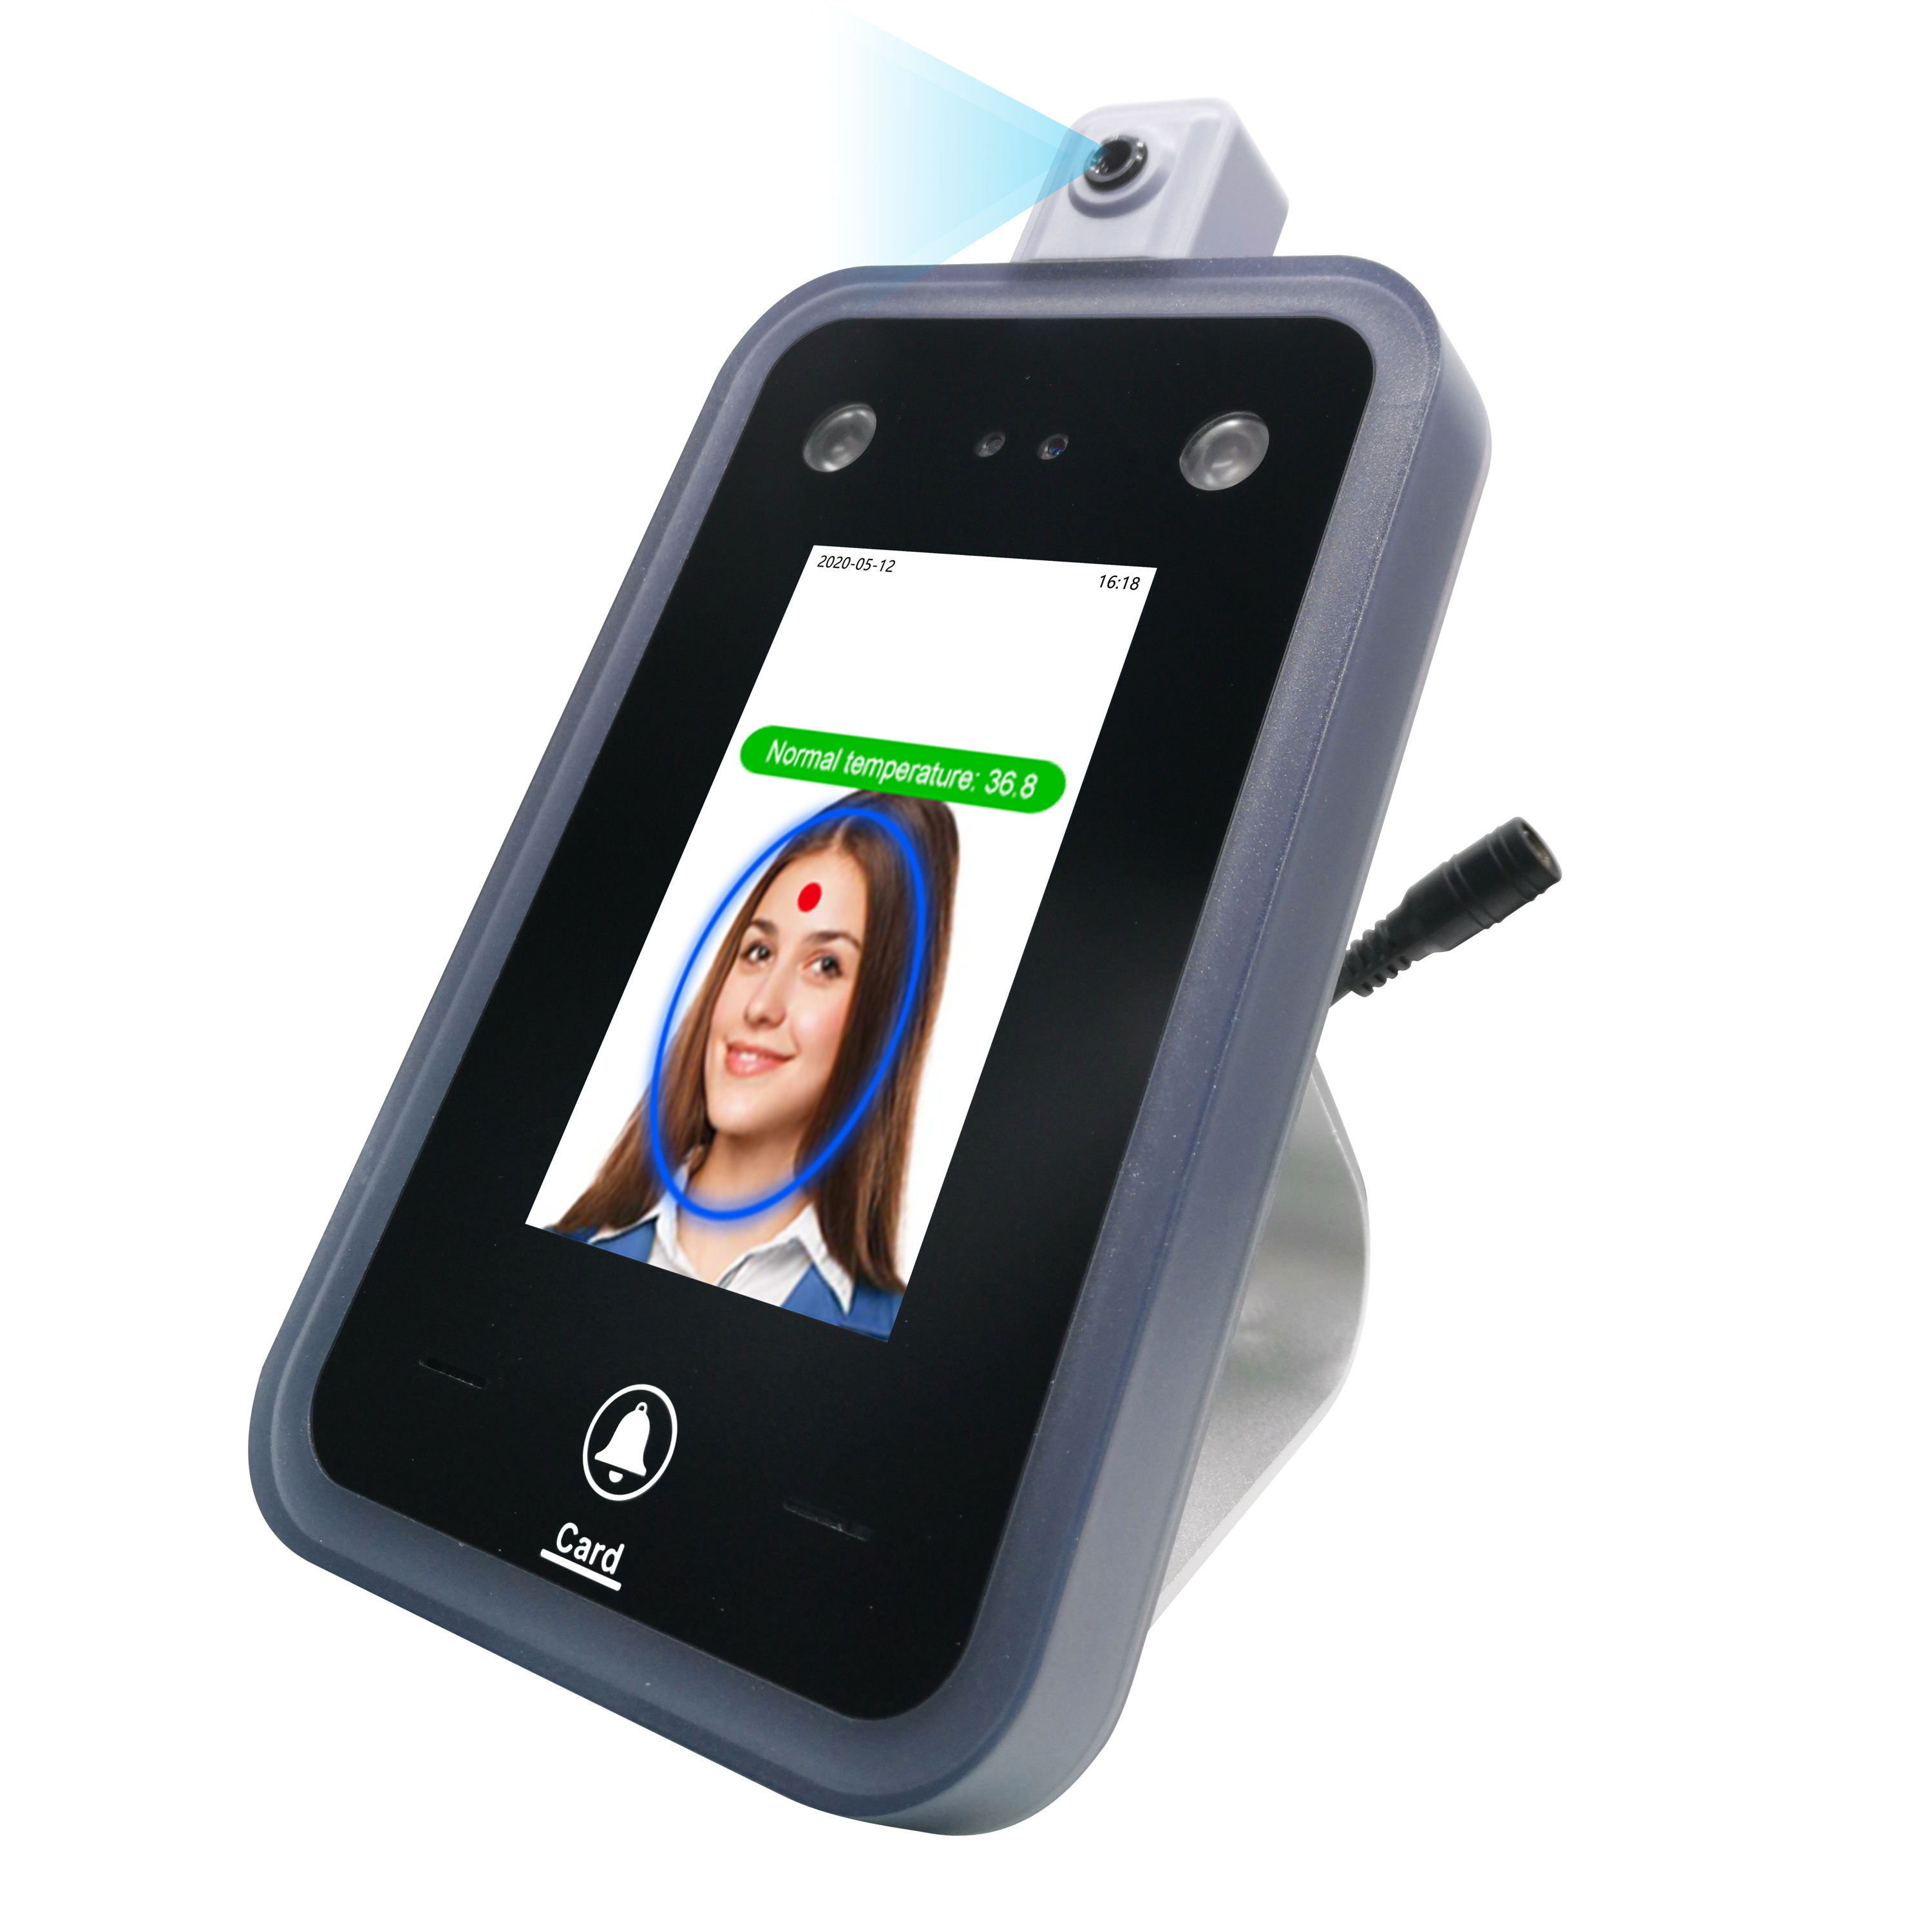 New arrival cheap face recognition infrared thermal temperature measure tool attendance system